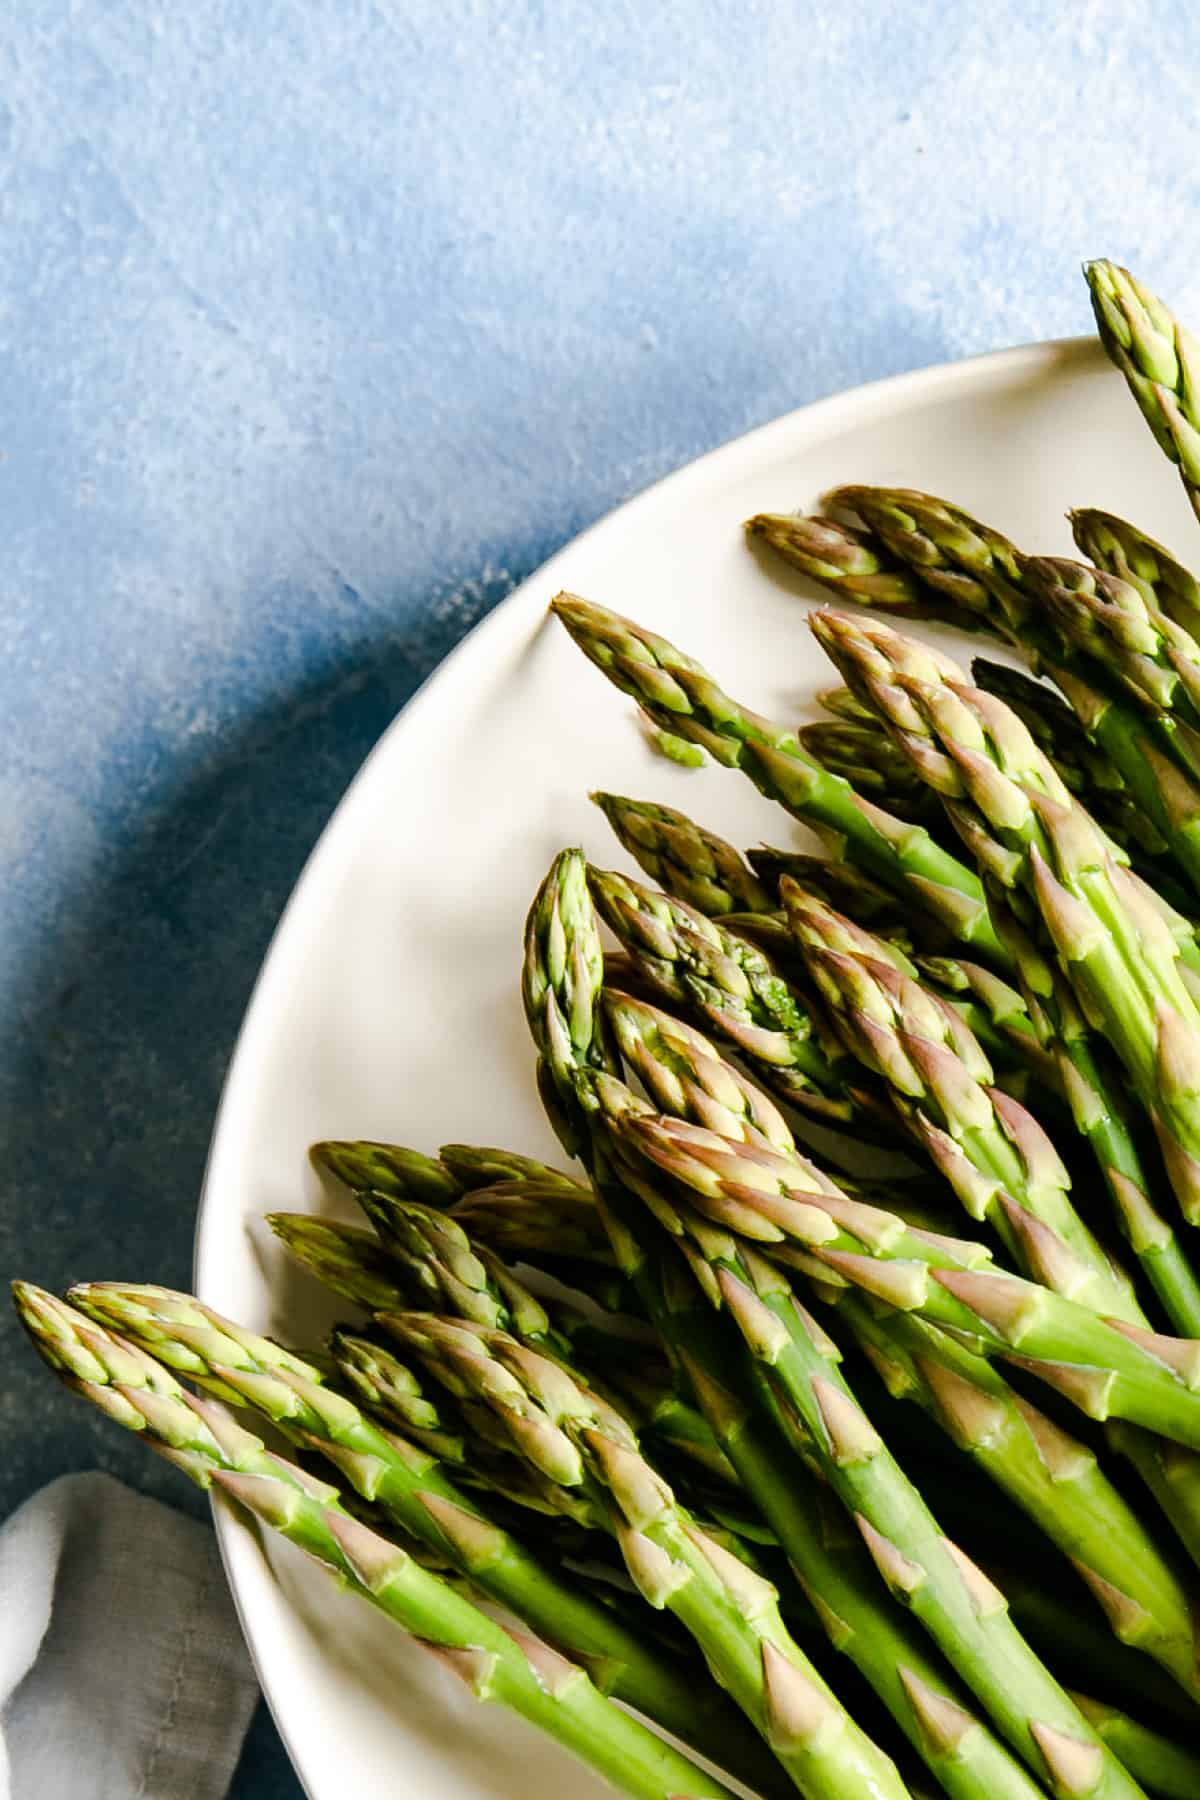 close up of the green asparagus tips in a white plate